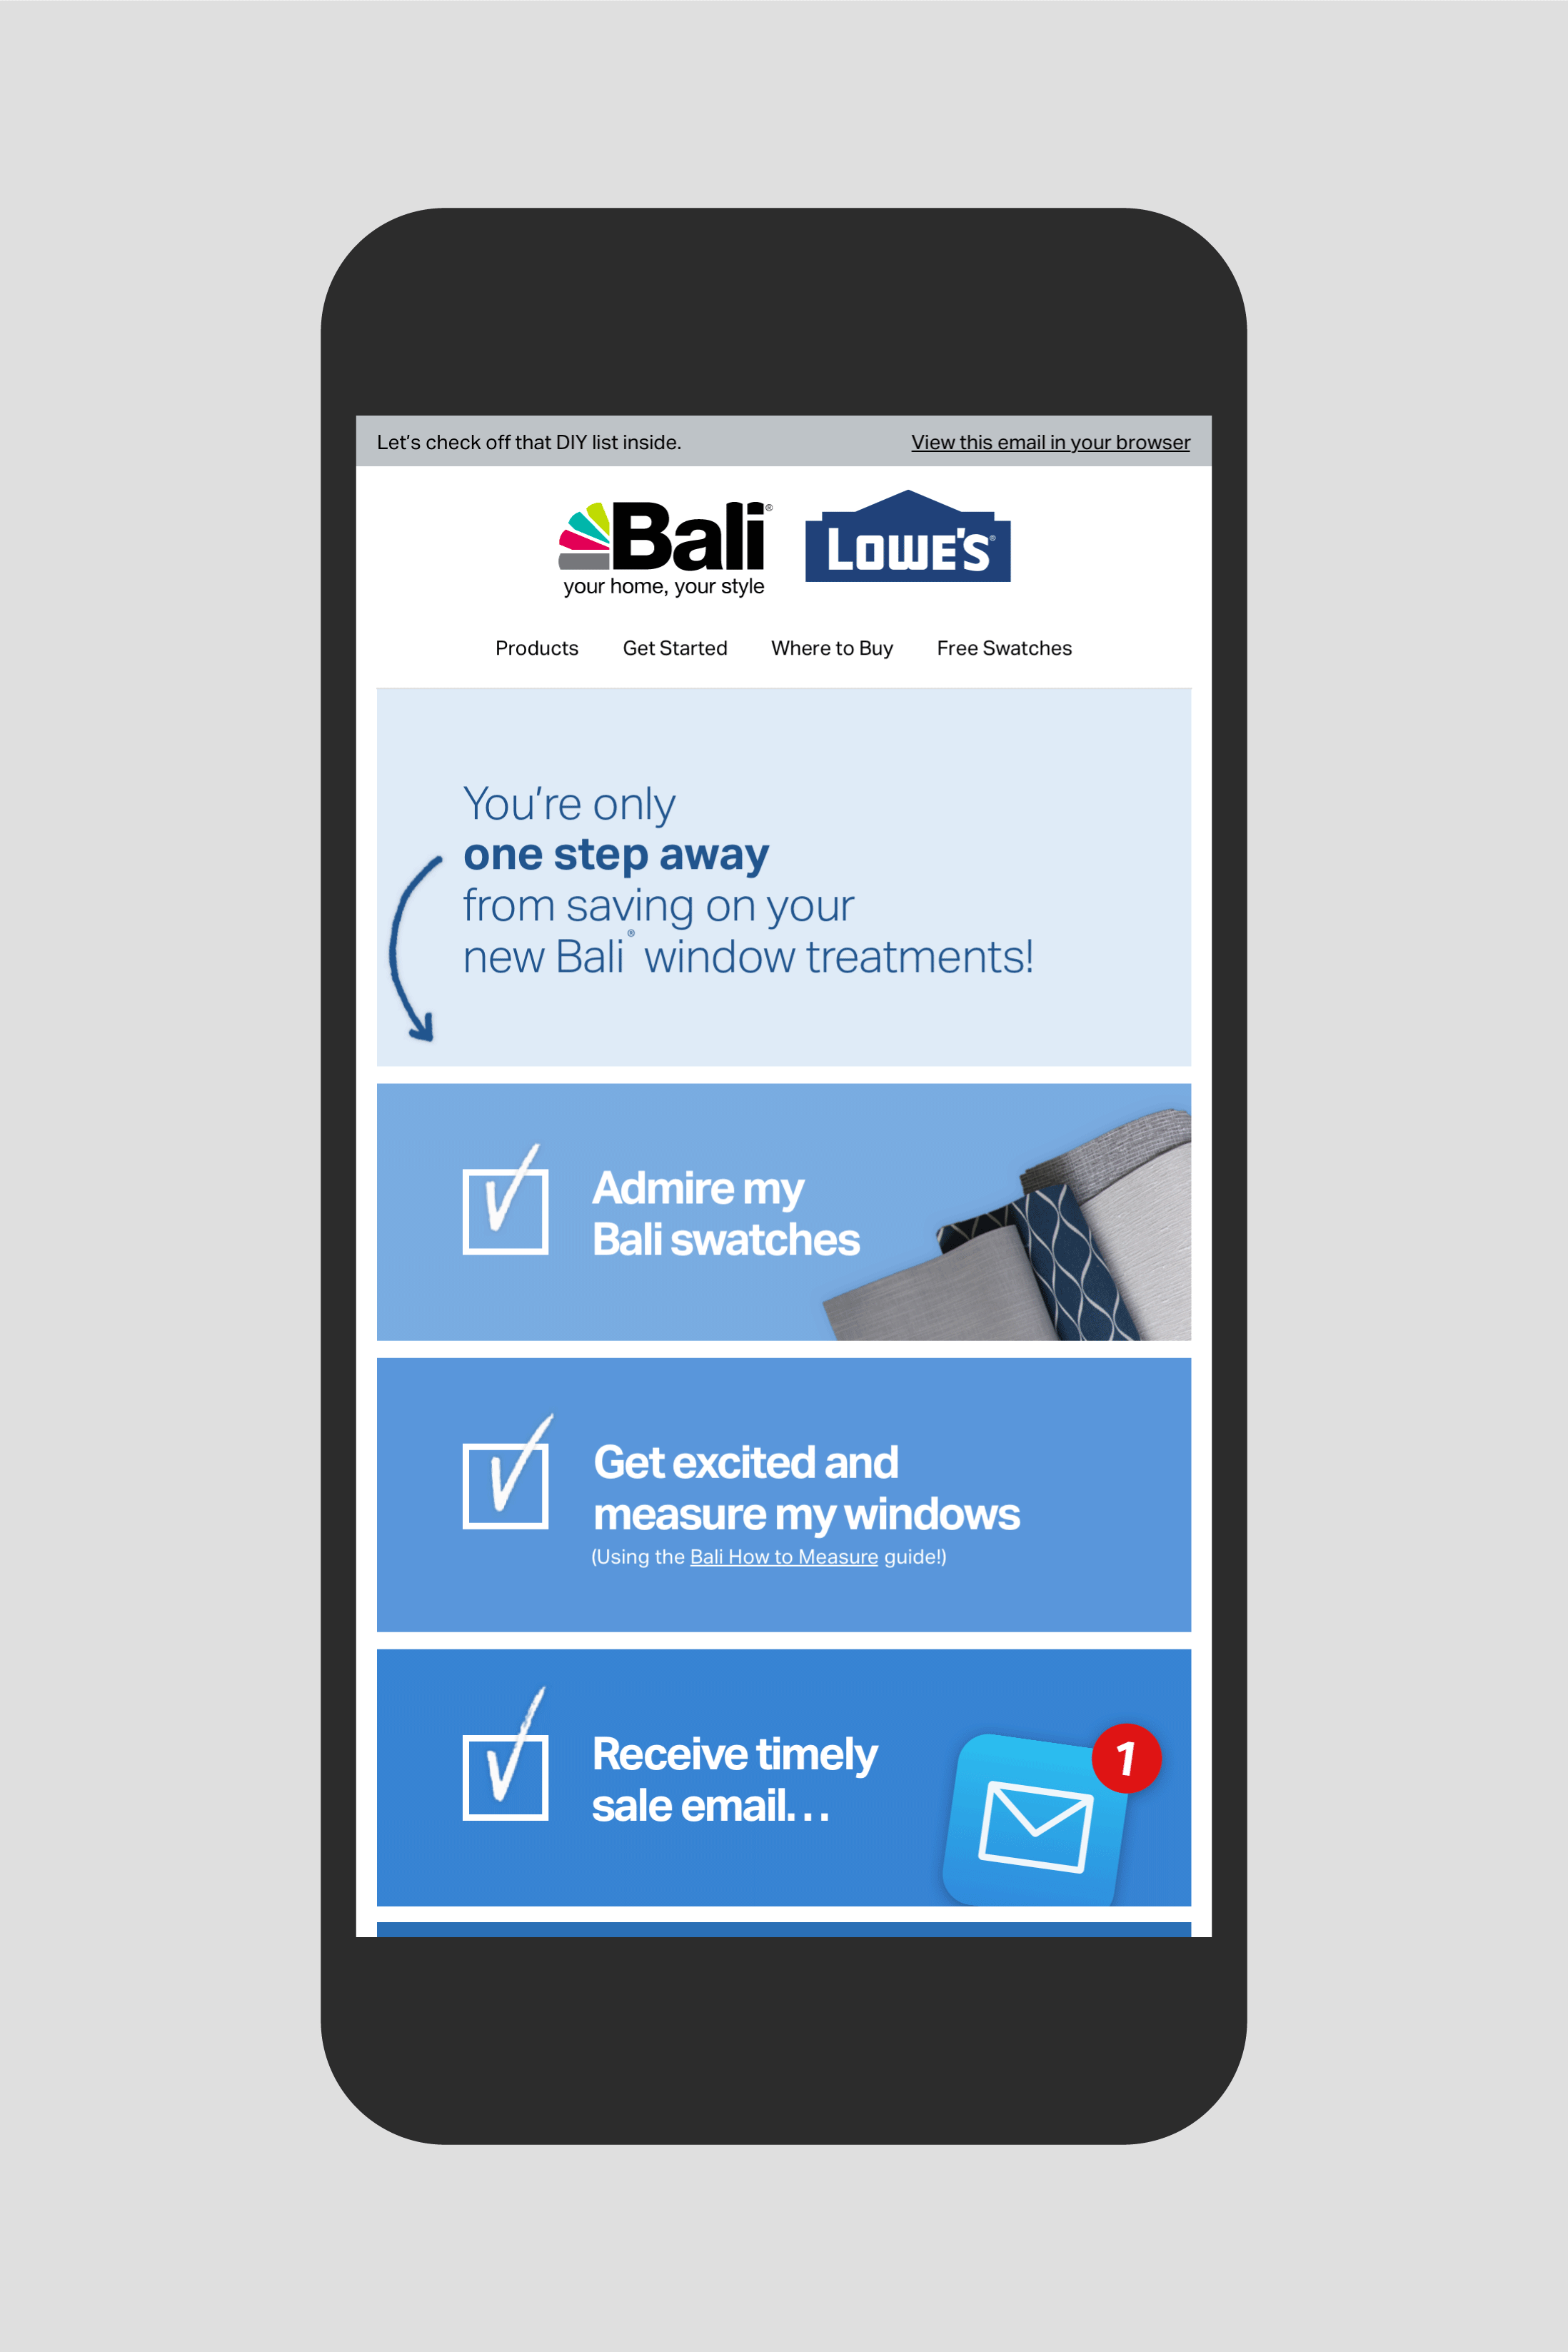 Bali Lowes promotional email: One Step from Savings